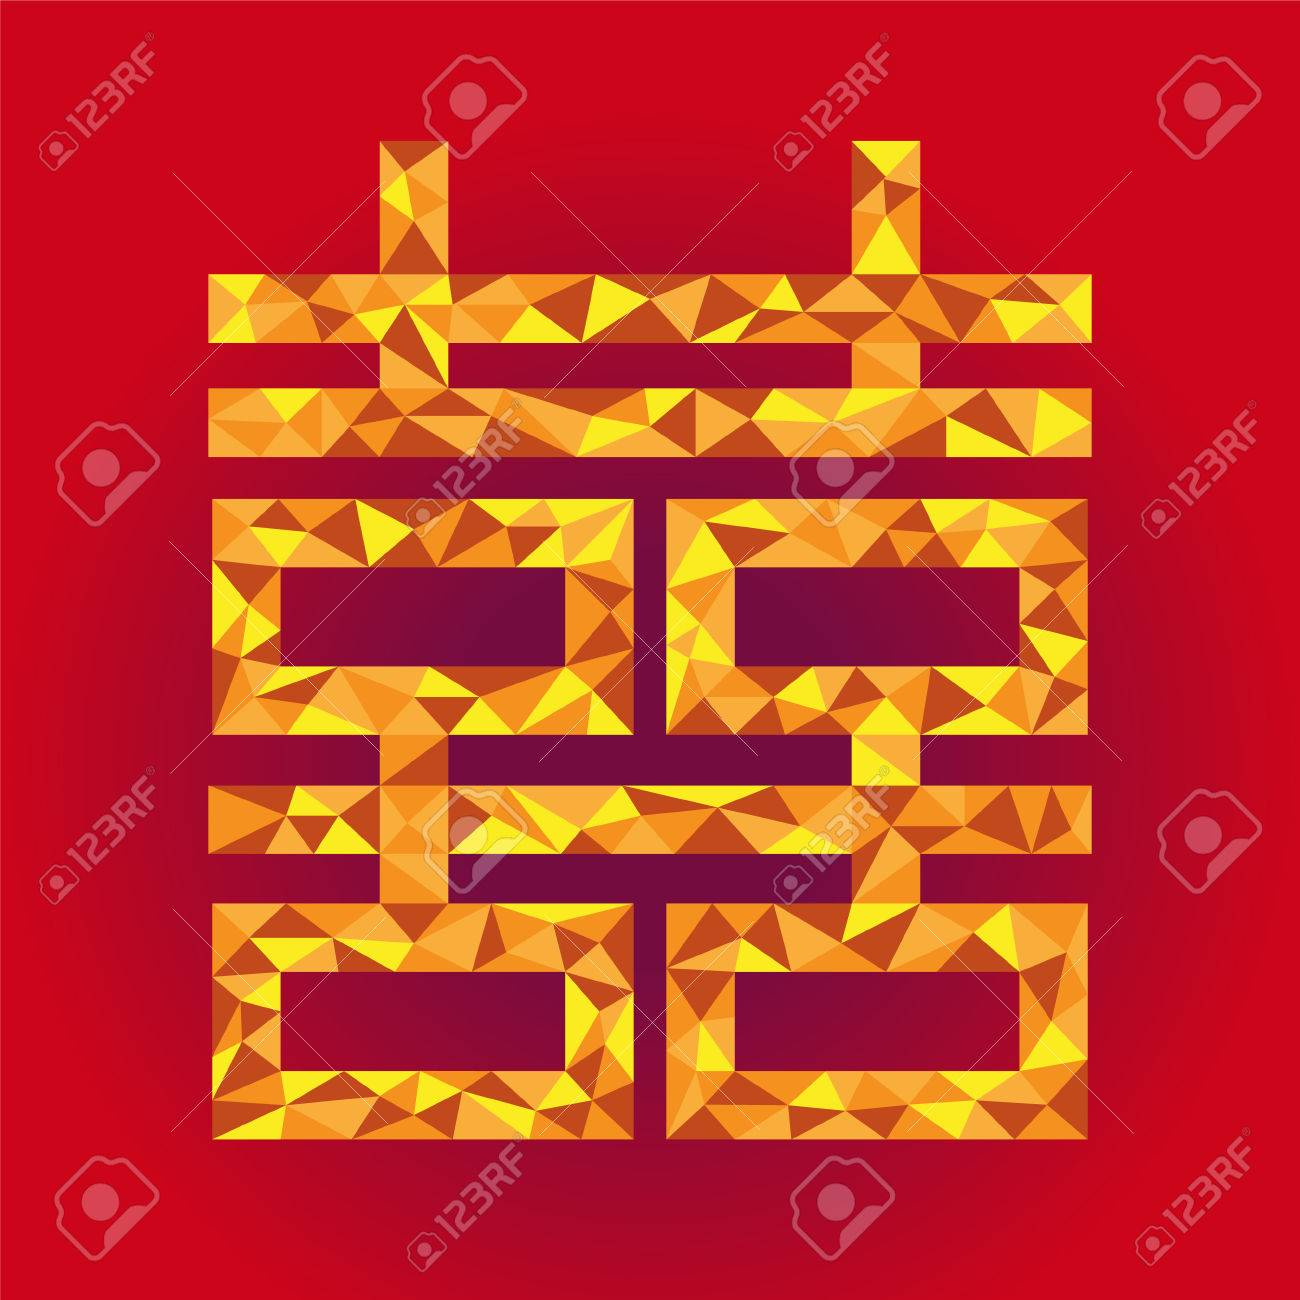 Chinese Symbol Of Double Happiness And Marriage Royalty Free